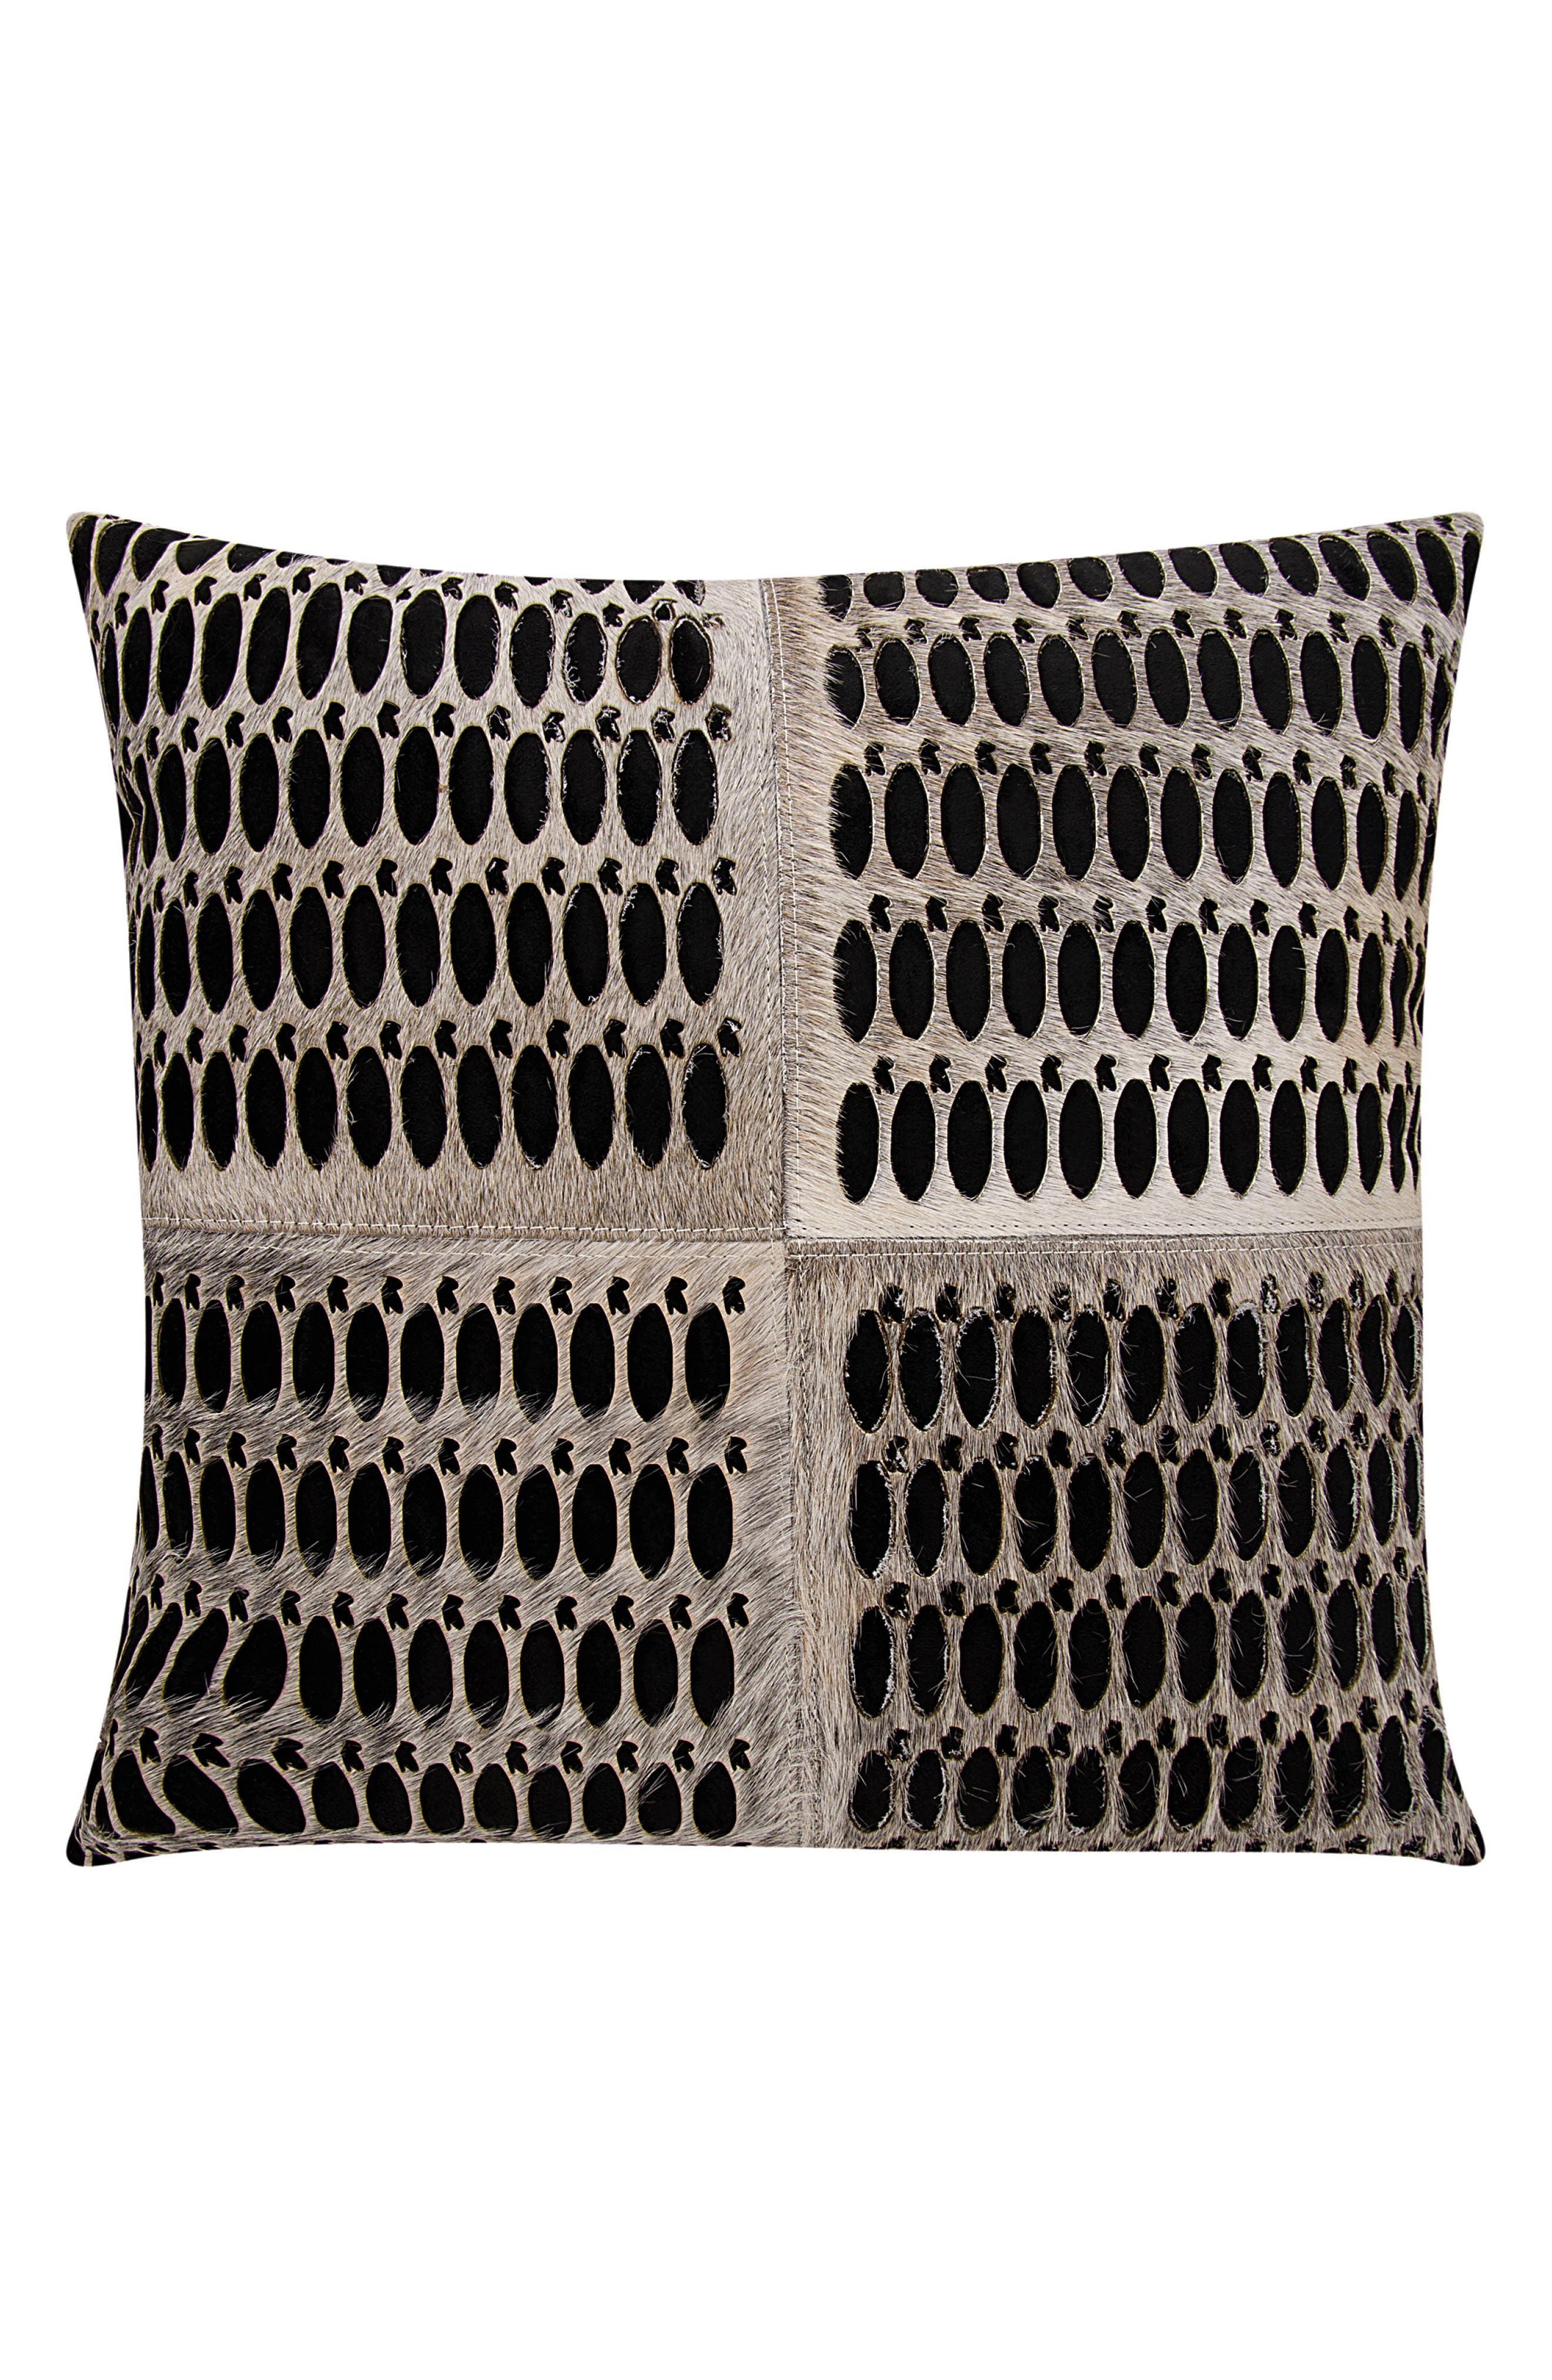 Alternate Image 1 Selected - Mina Victory Calf Hair Accent Pillow